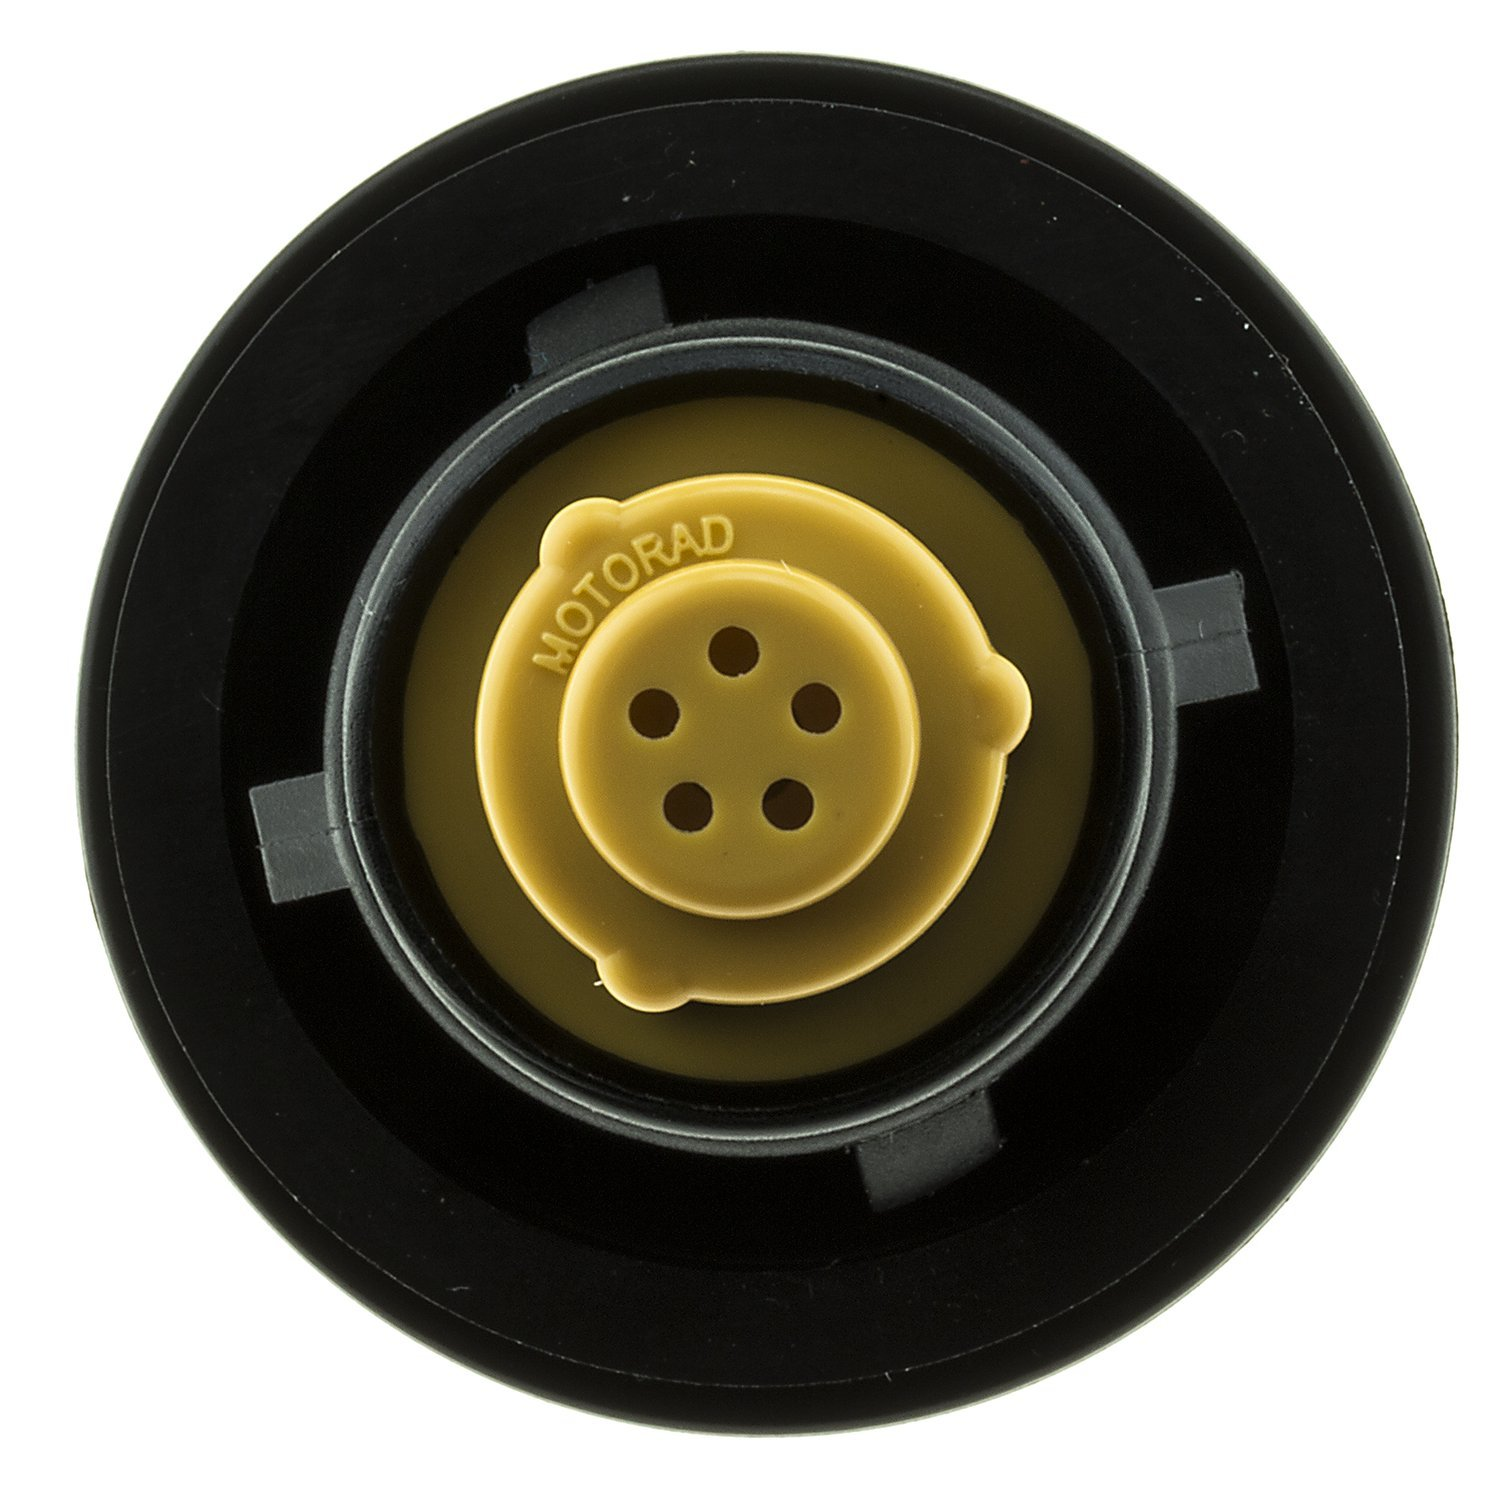 Motorad MGC-91 Locking Fuel Cap